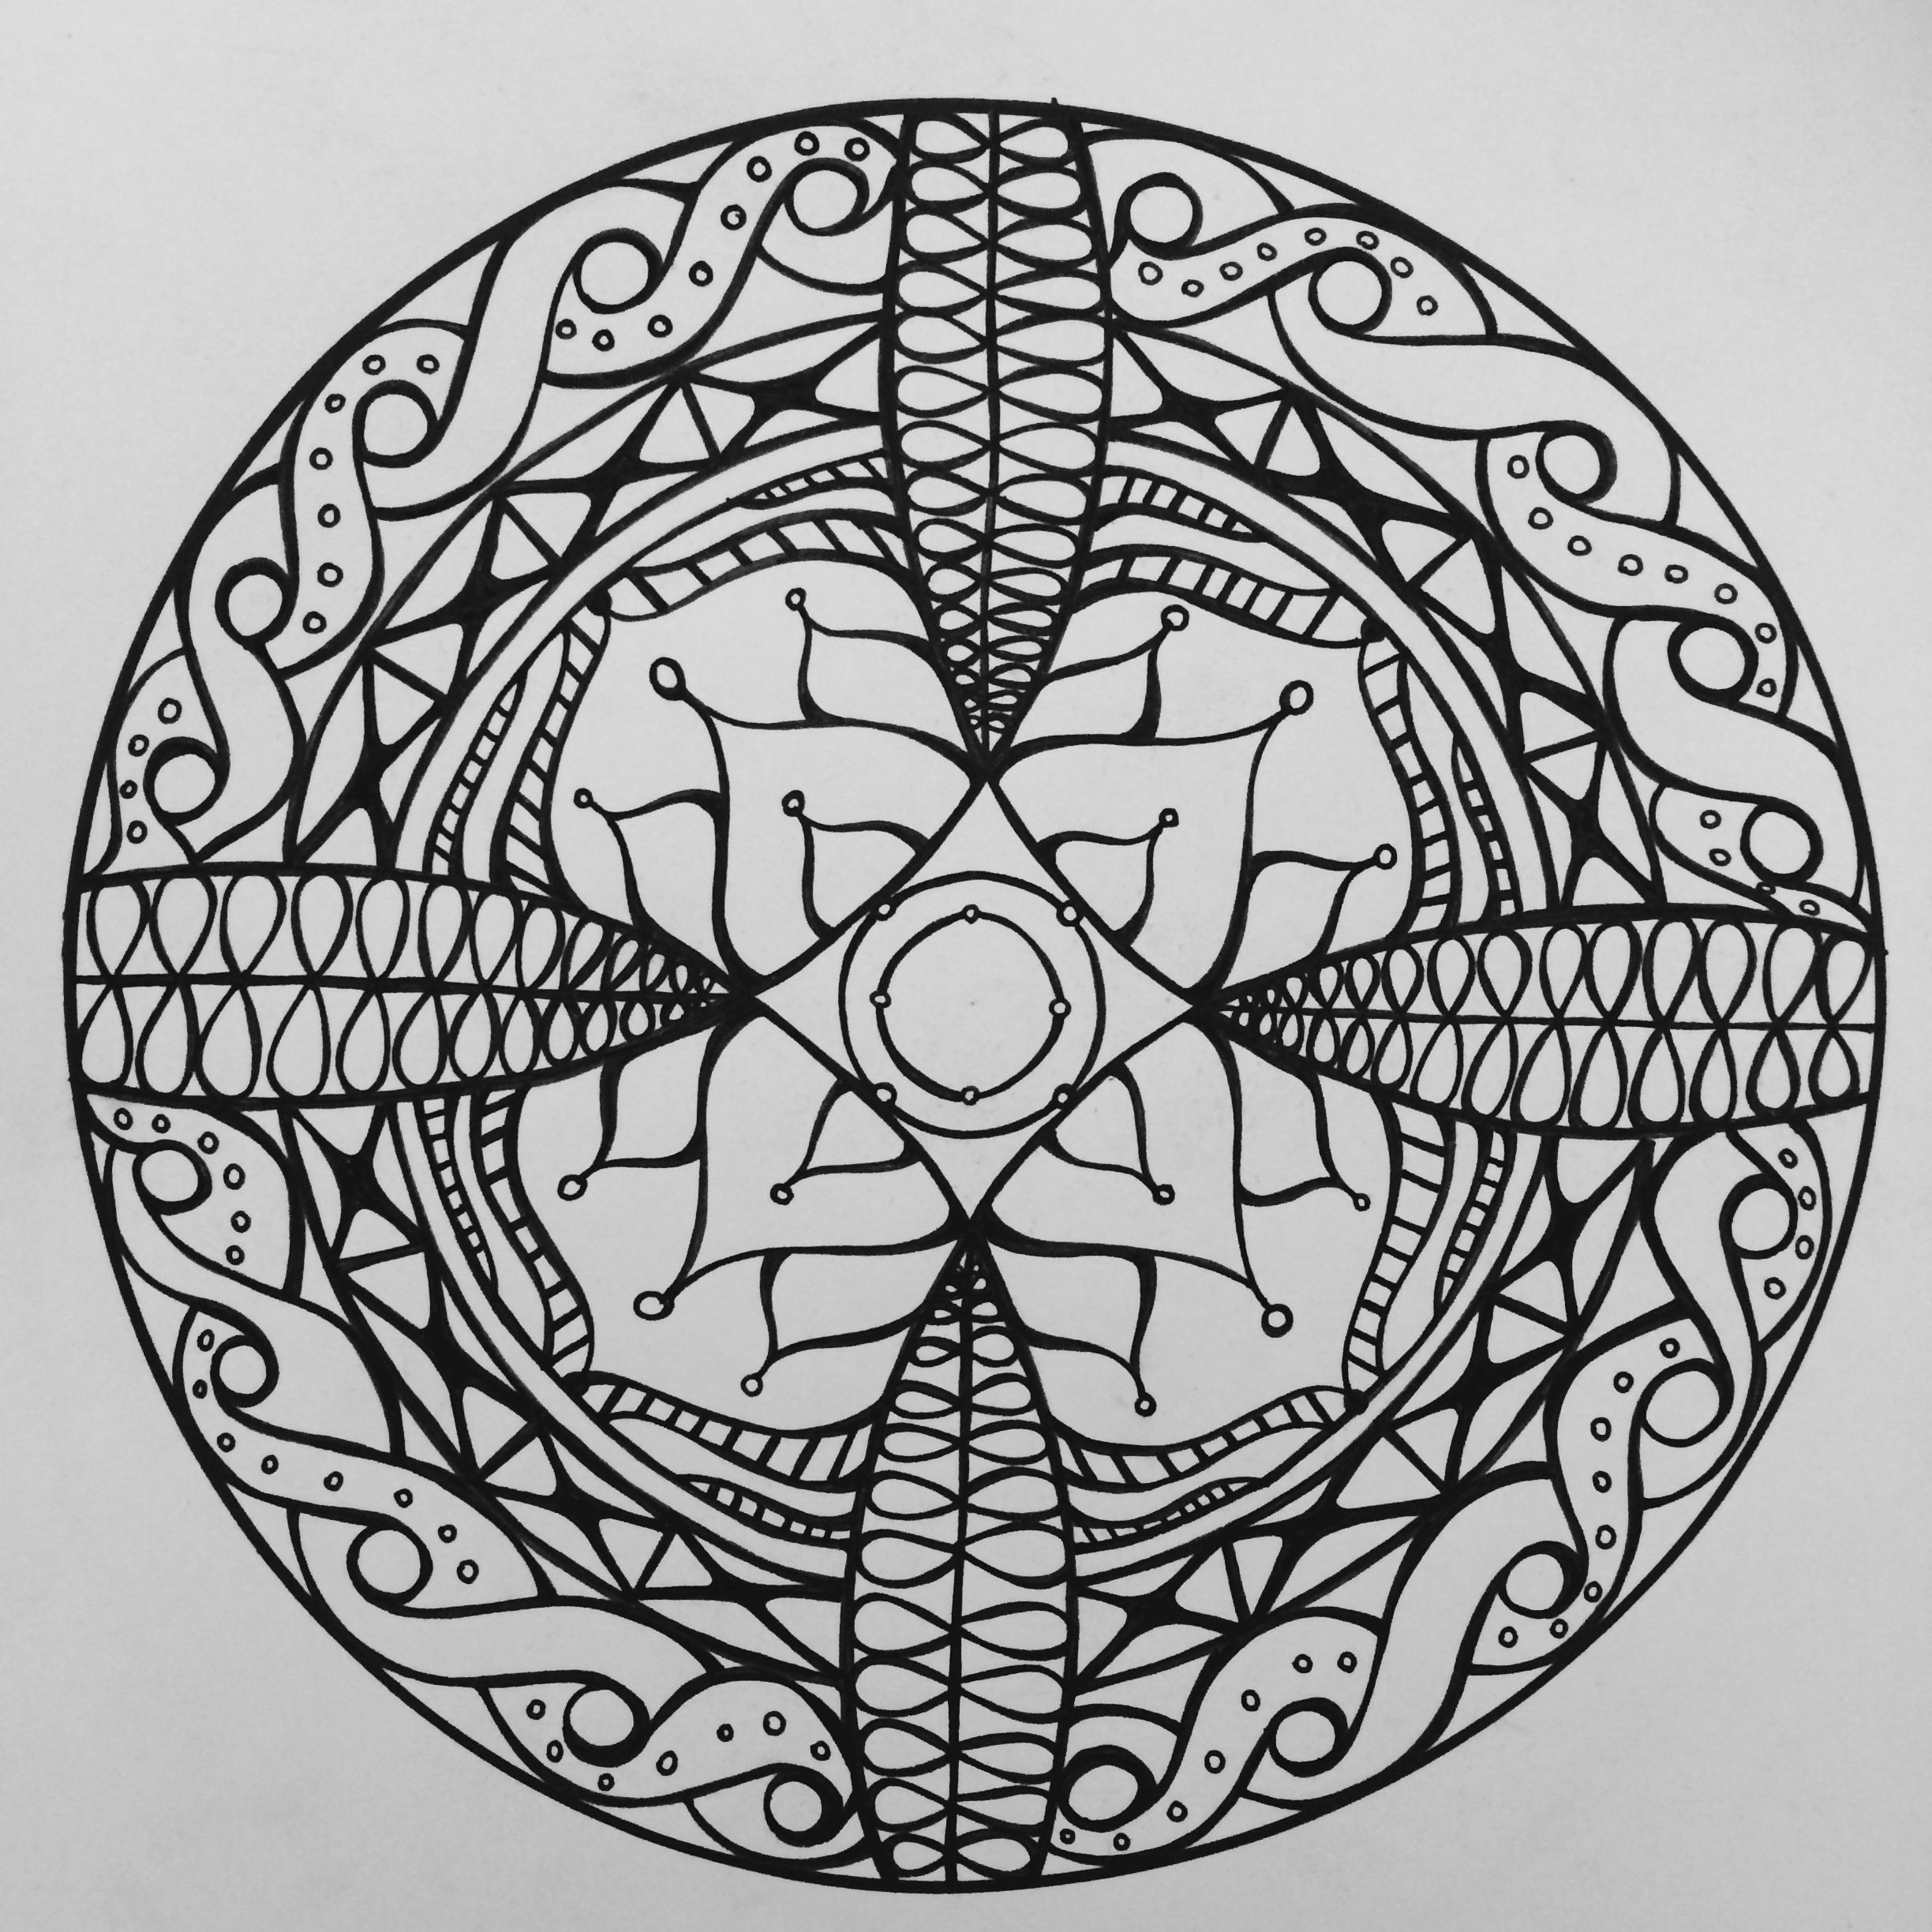 mandala hand coloring pages mandala hamsa hand coloring pages for adults sketch coloring hand mandala pages